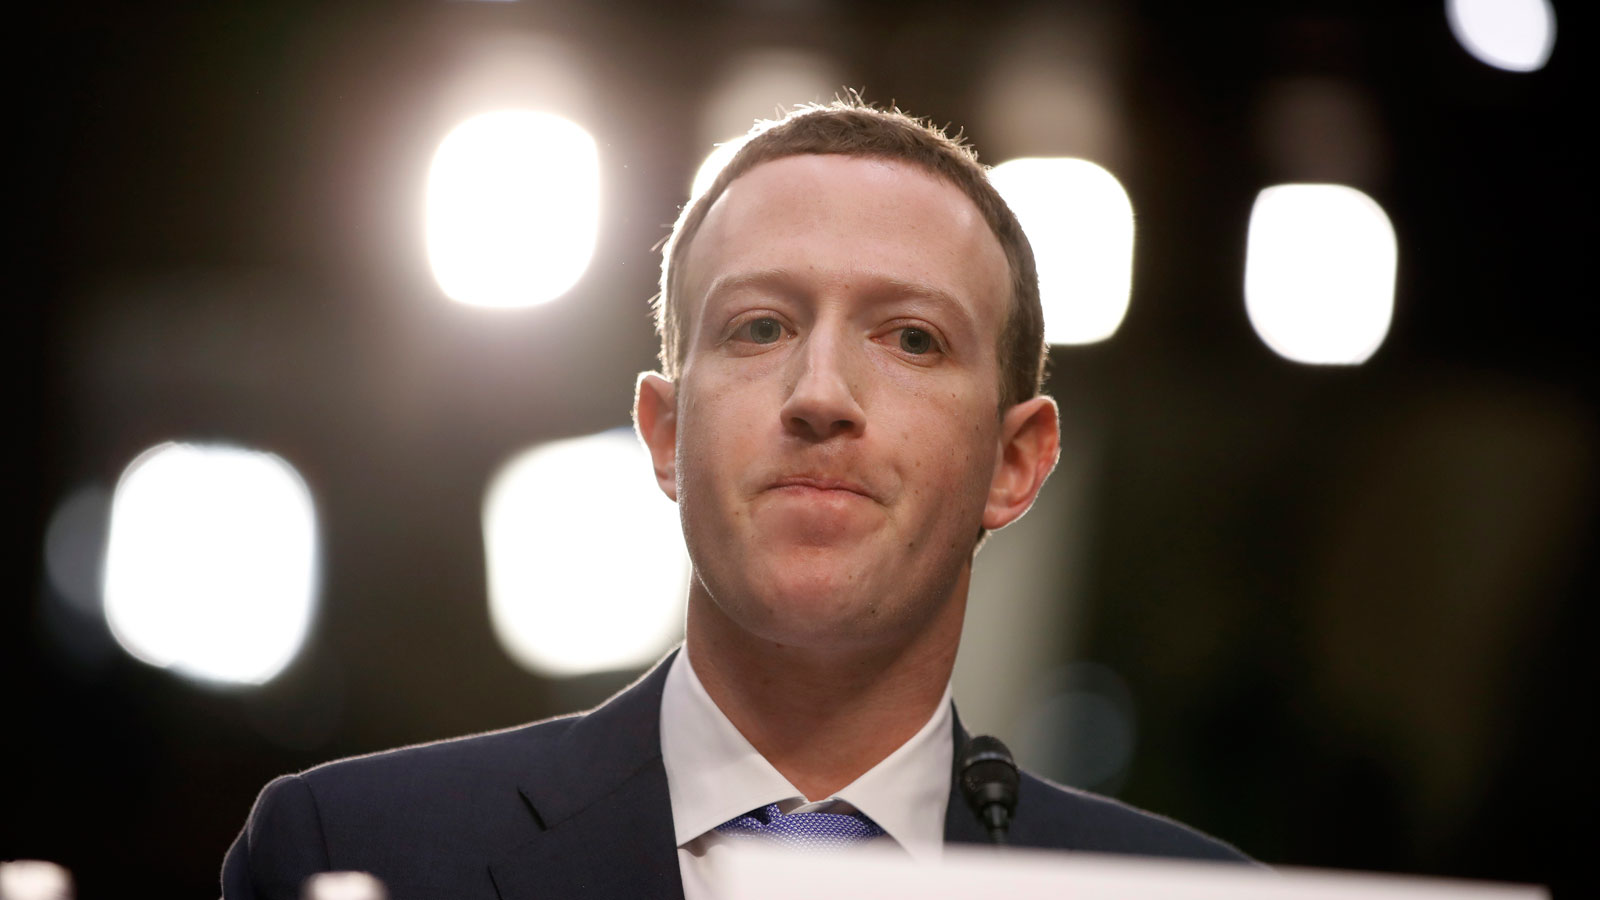 Facebook's Zuckerberg to face an intense grilling from Congress